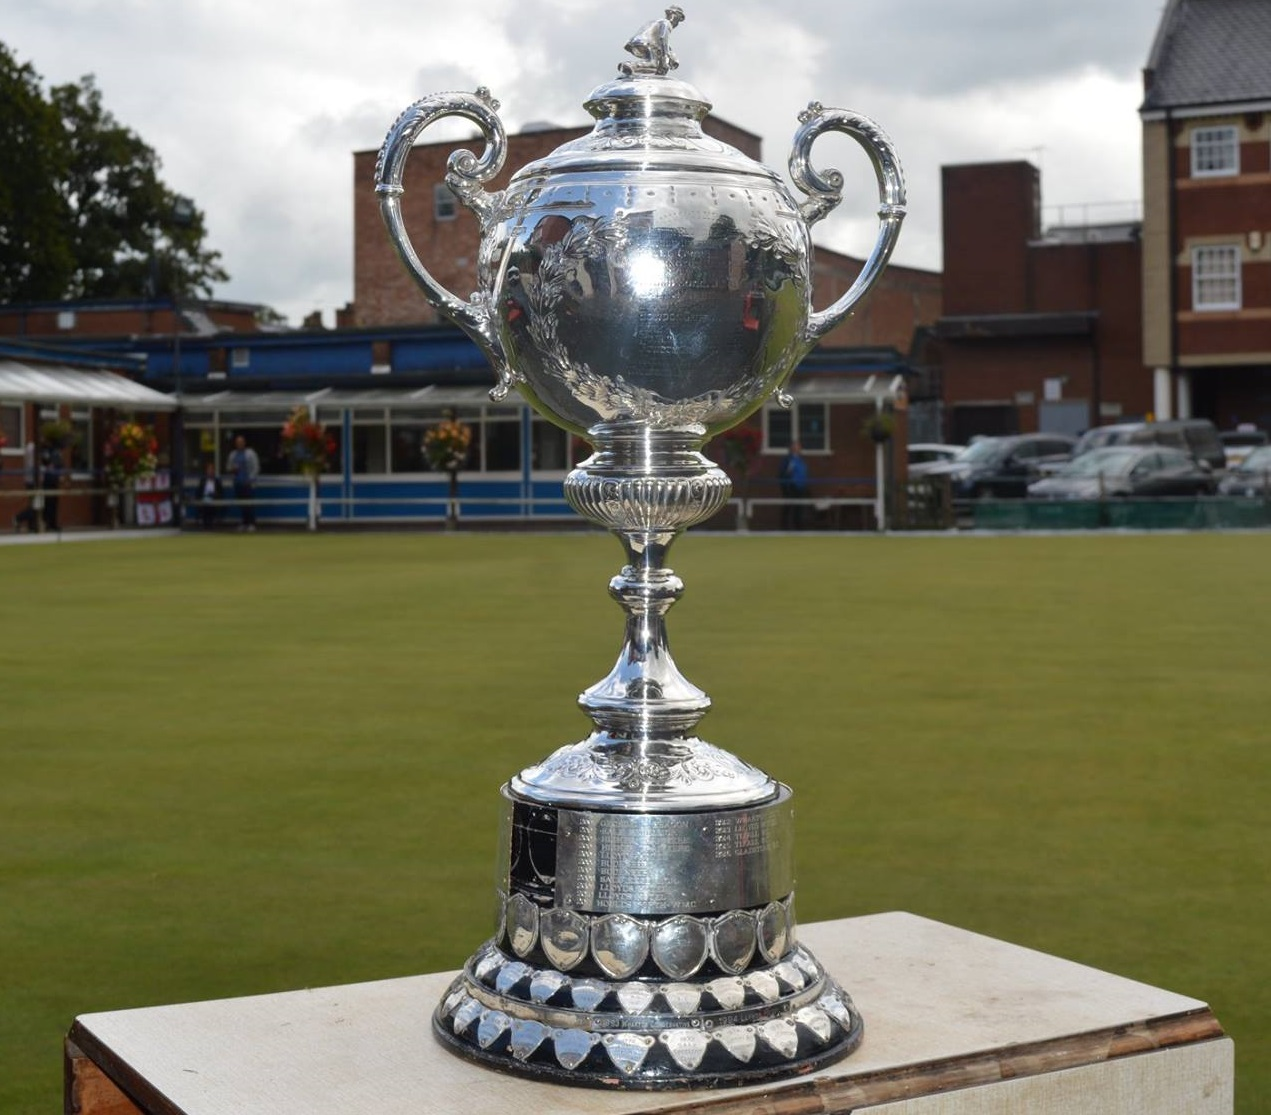 Castle, Comberbach, Rudheath and Wharton Cons all made it safely through to the last 16 of the Cheshire County Bowling Association's Brunner Cup with victories on Saturday afternoon